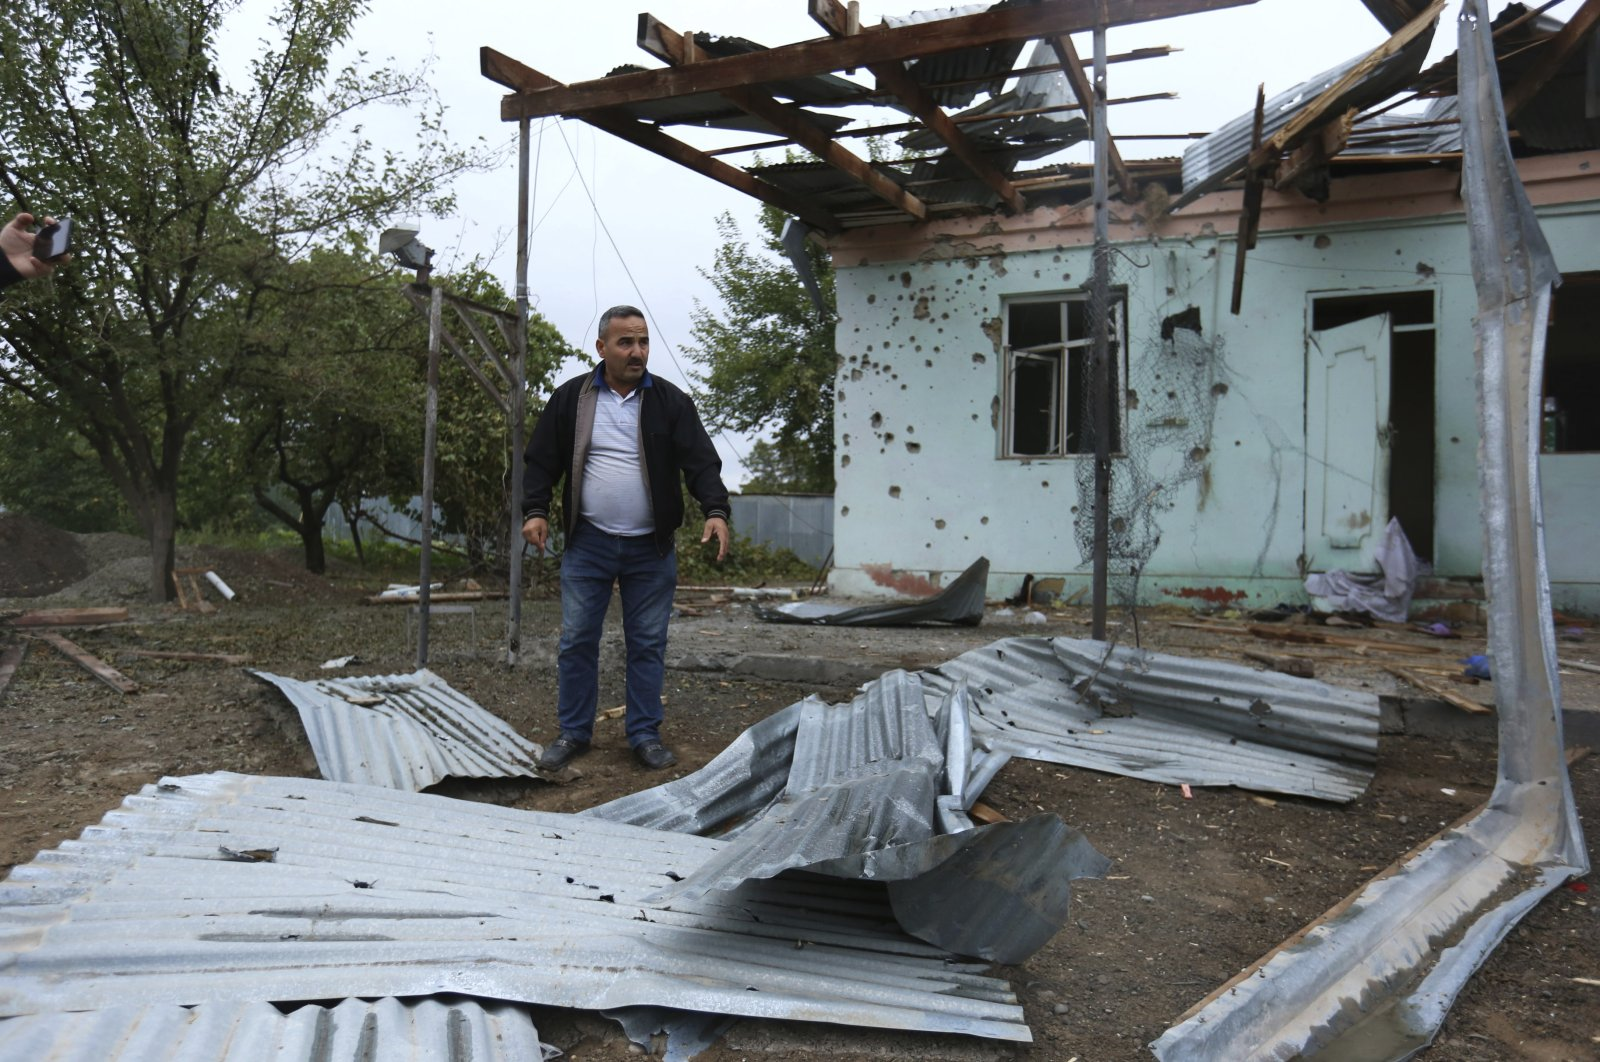 A man stands in a yard of a destroyed house damaged by shelling during fighting over the region of Nagorno-Karabakh in Agdam, Azerbaijan, Oct. 1, 2020. (AP Photo)